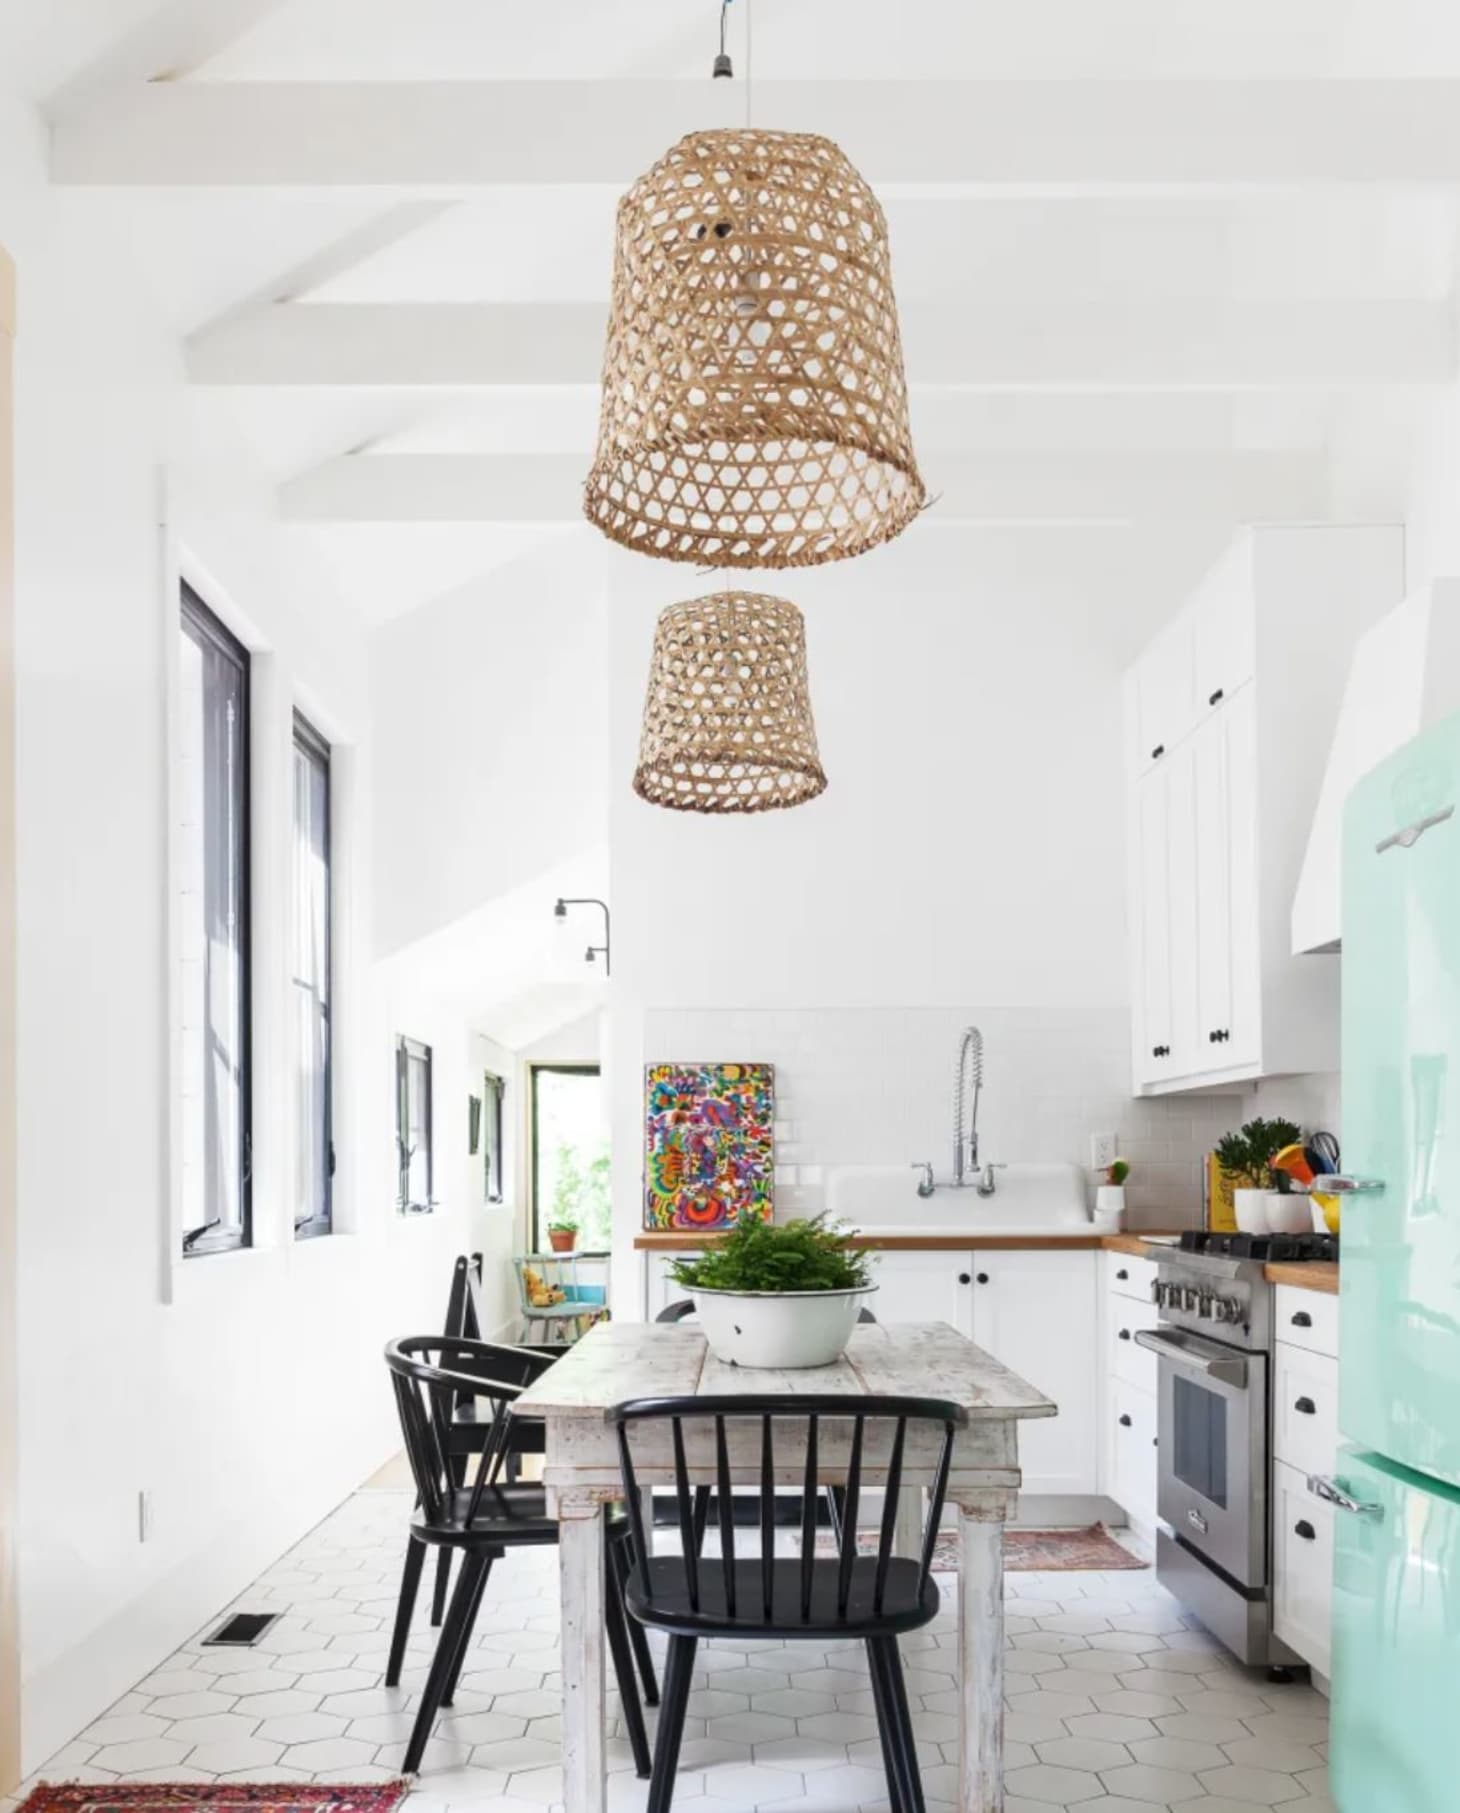 Wheelhouse Apartments: 8 Fast Kitchen Fixes You Can Make Right When You Move In